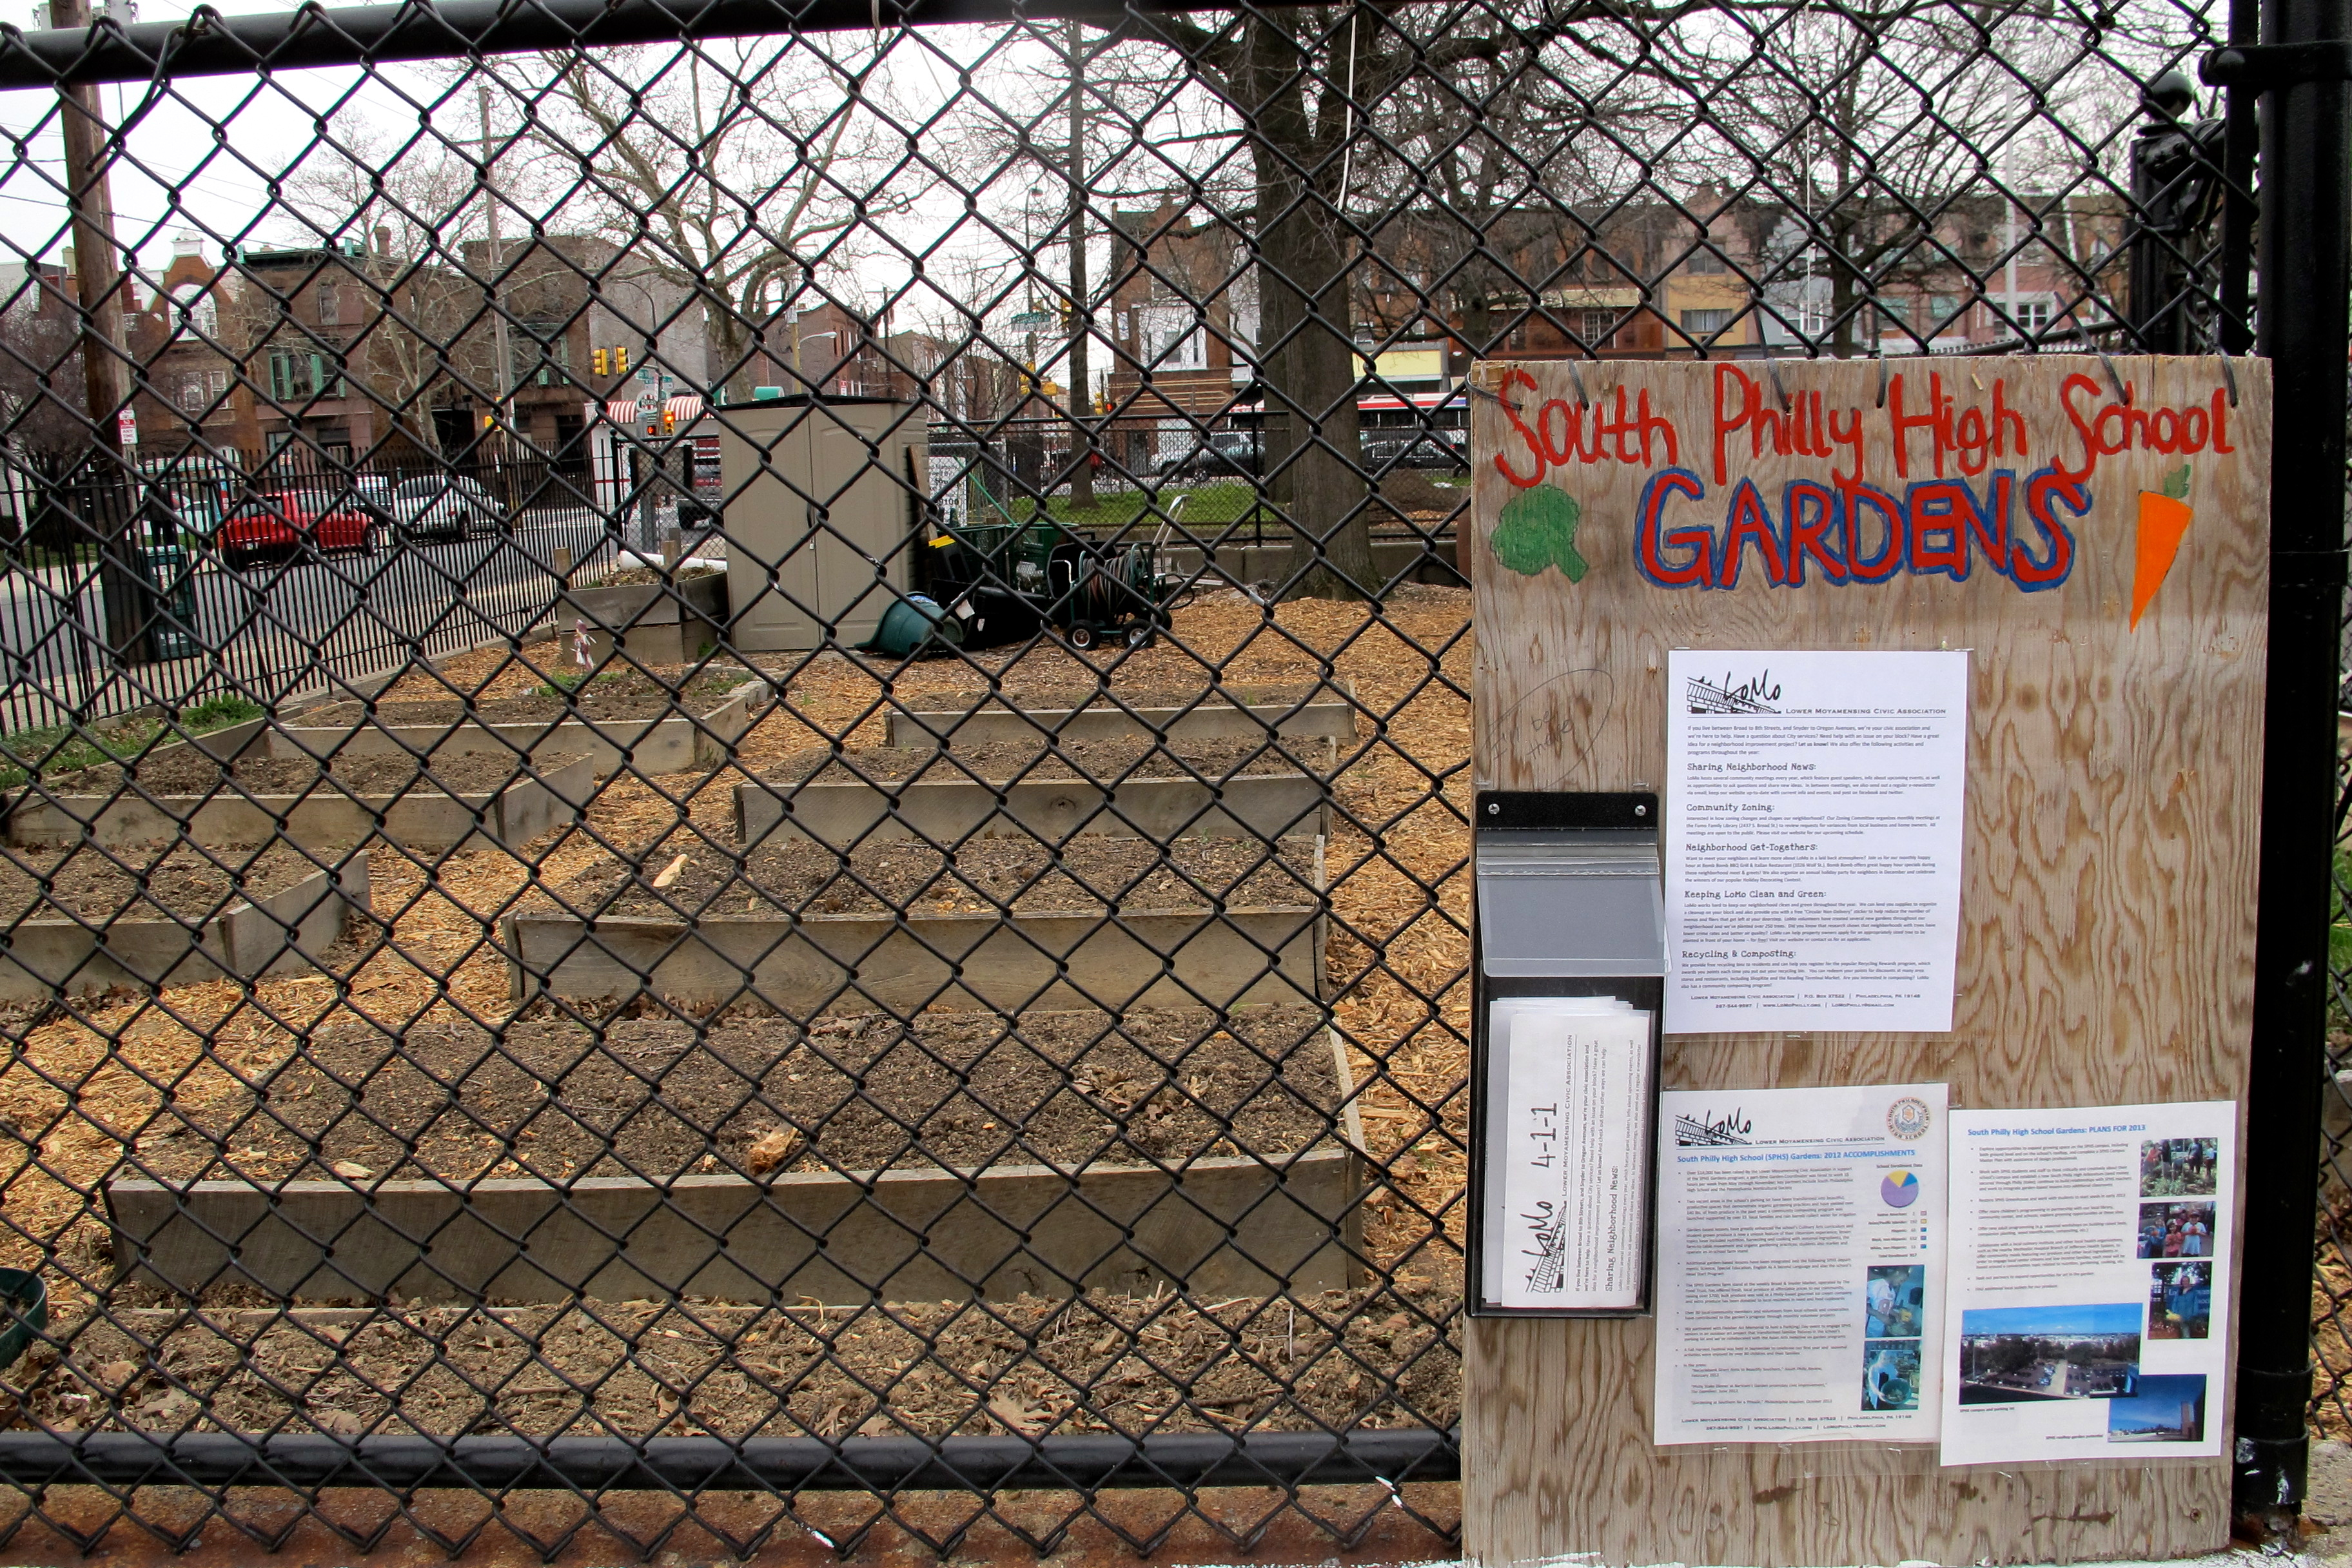 South Philly High School Gardens await spring plantings.